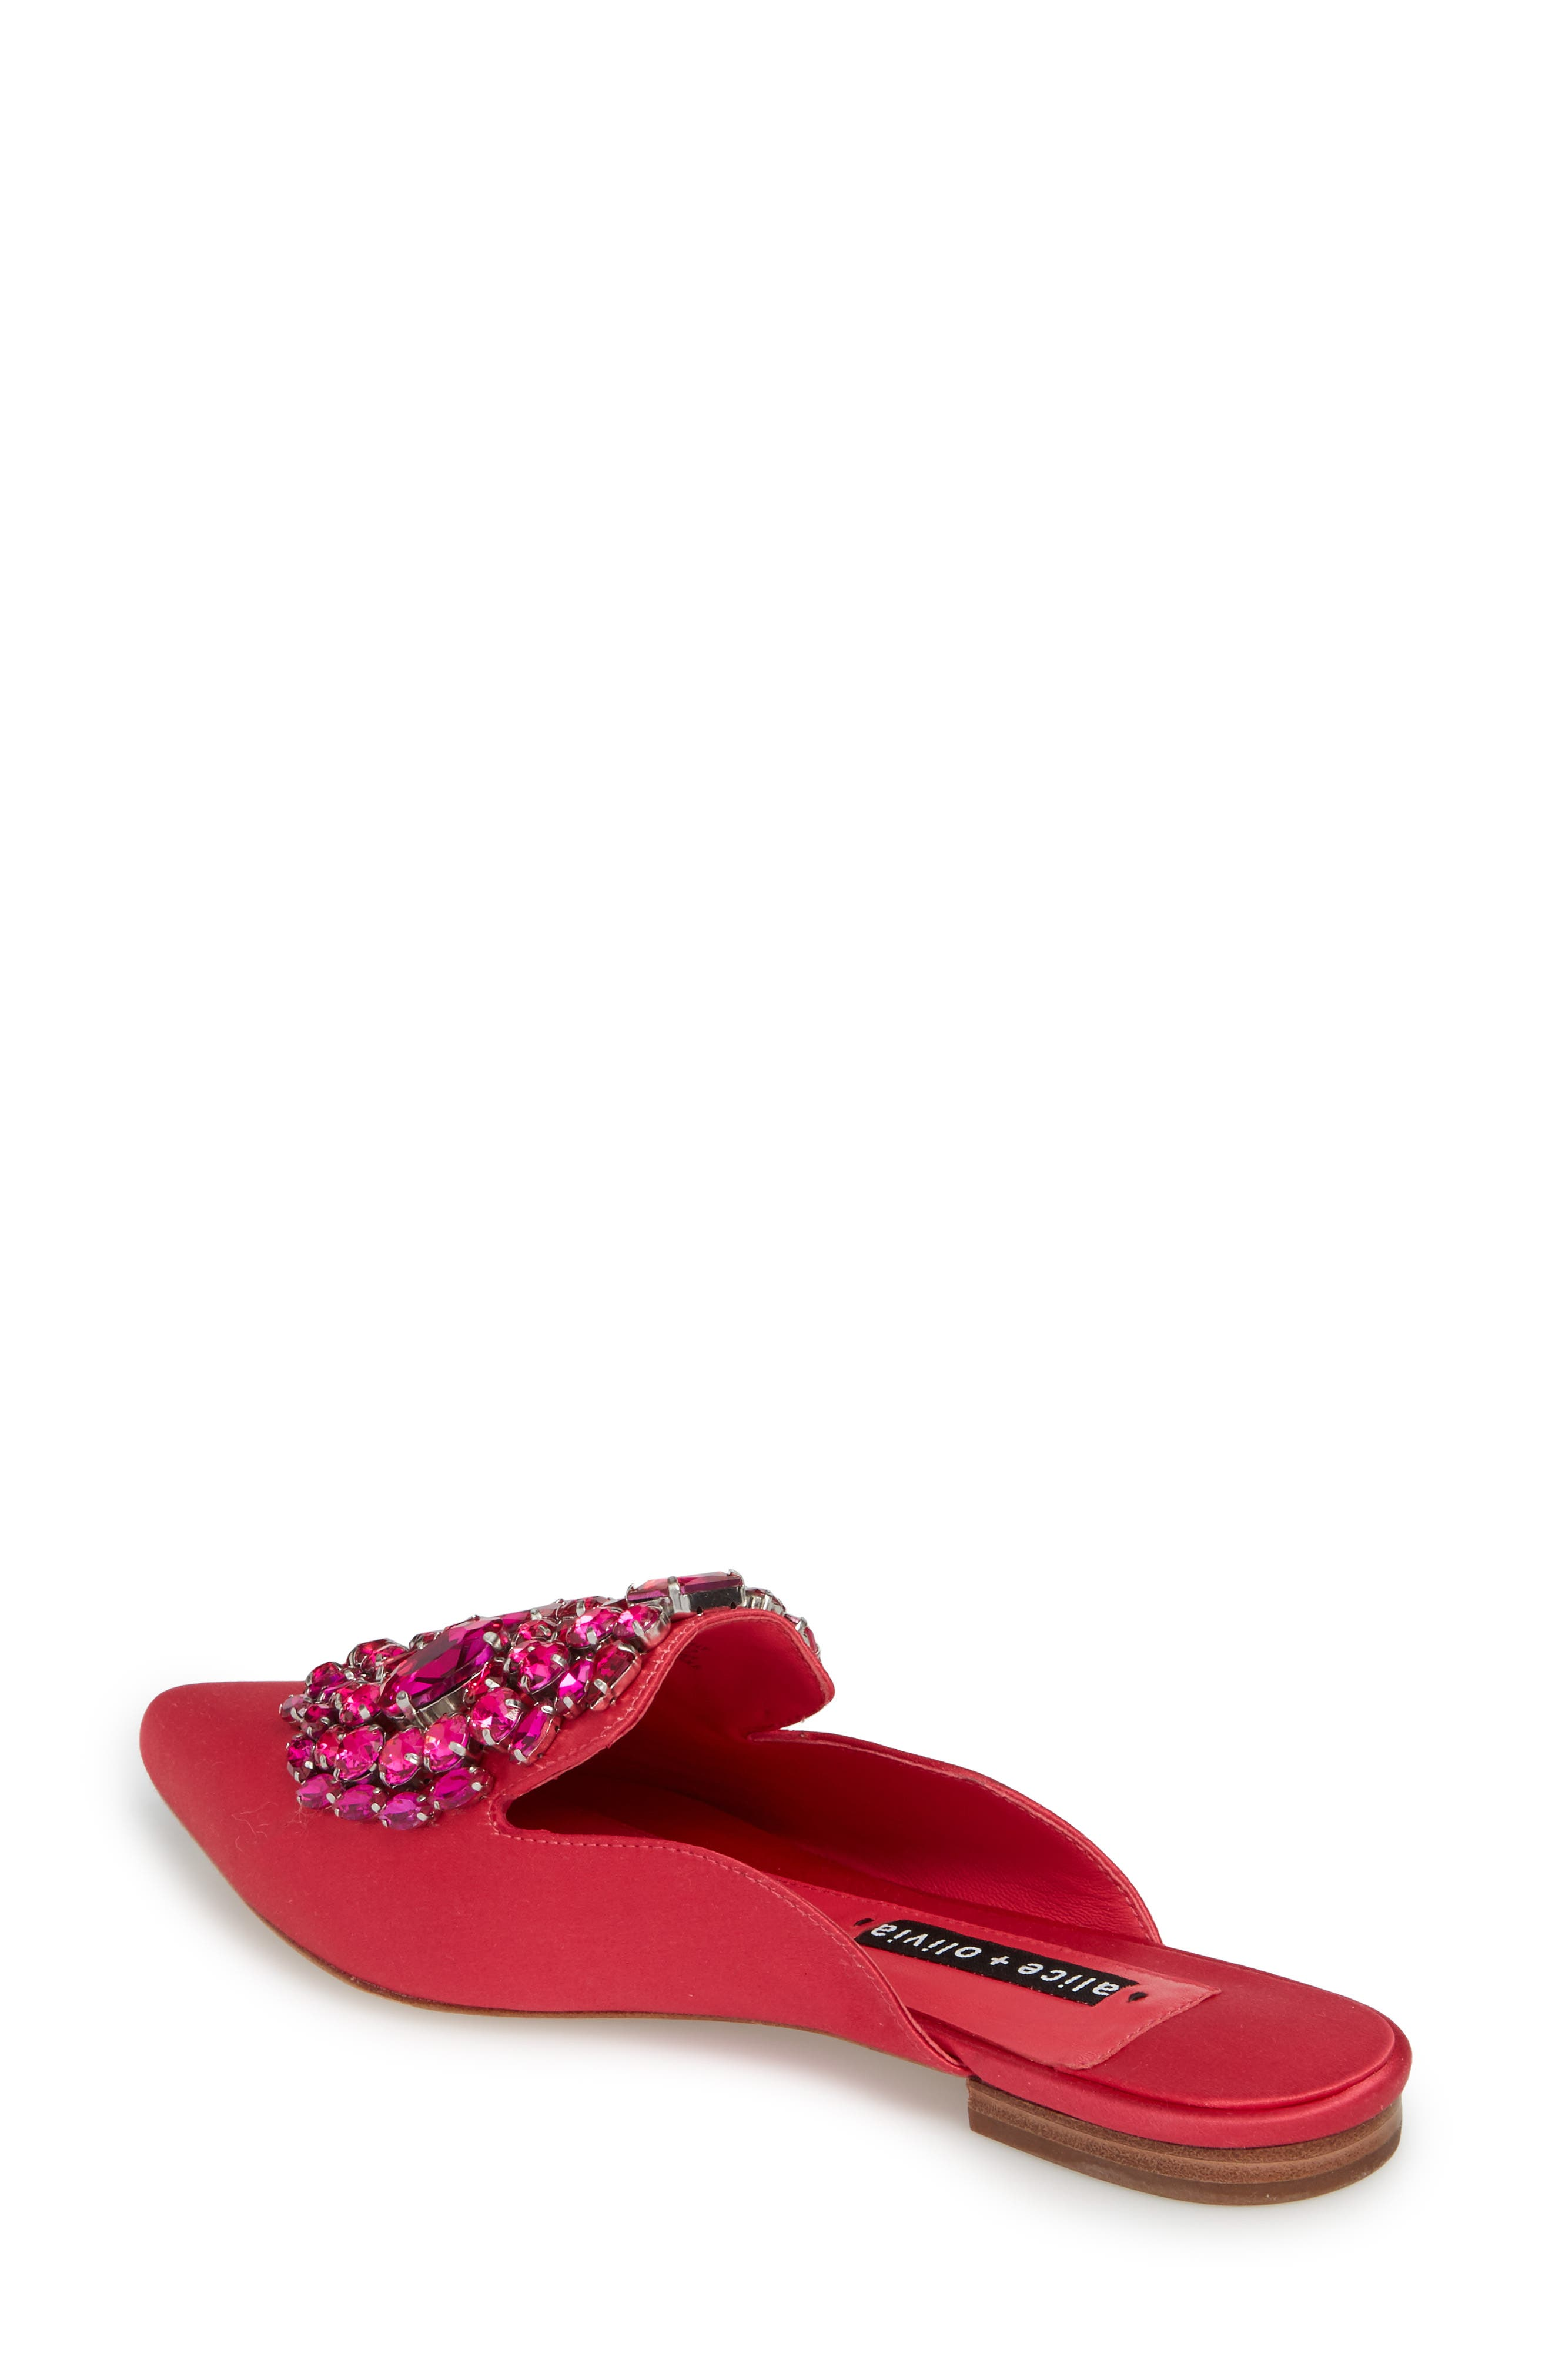 Lilly Crystal Embellished Loafer Mule,                             Alternate thumbnail 2, color,                             650